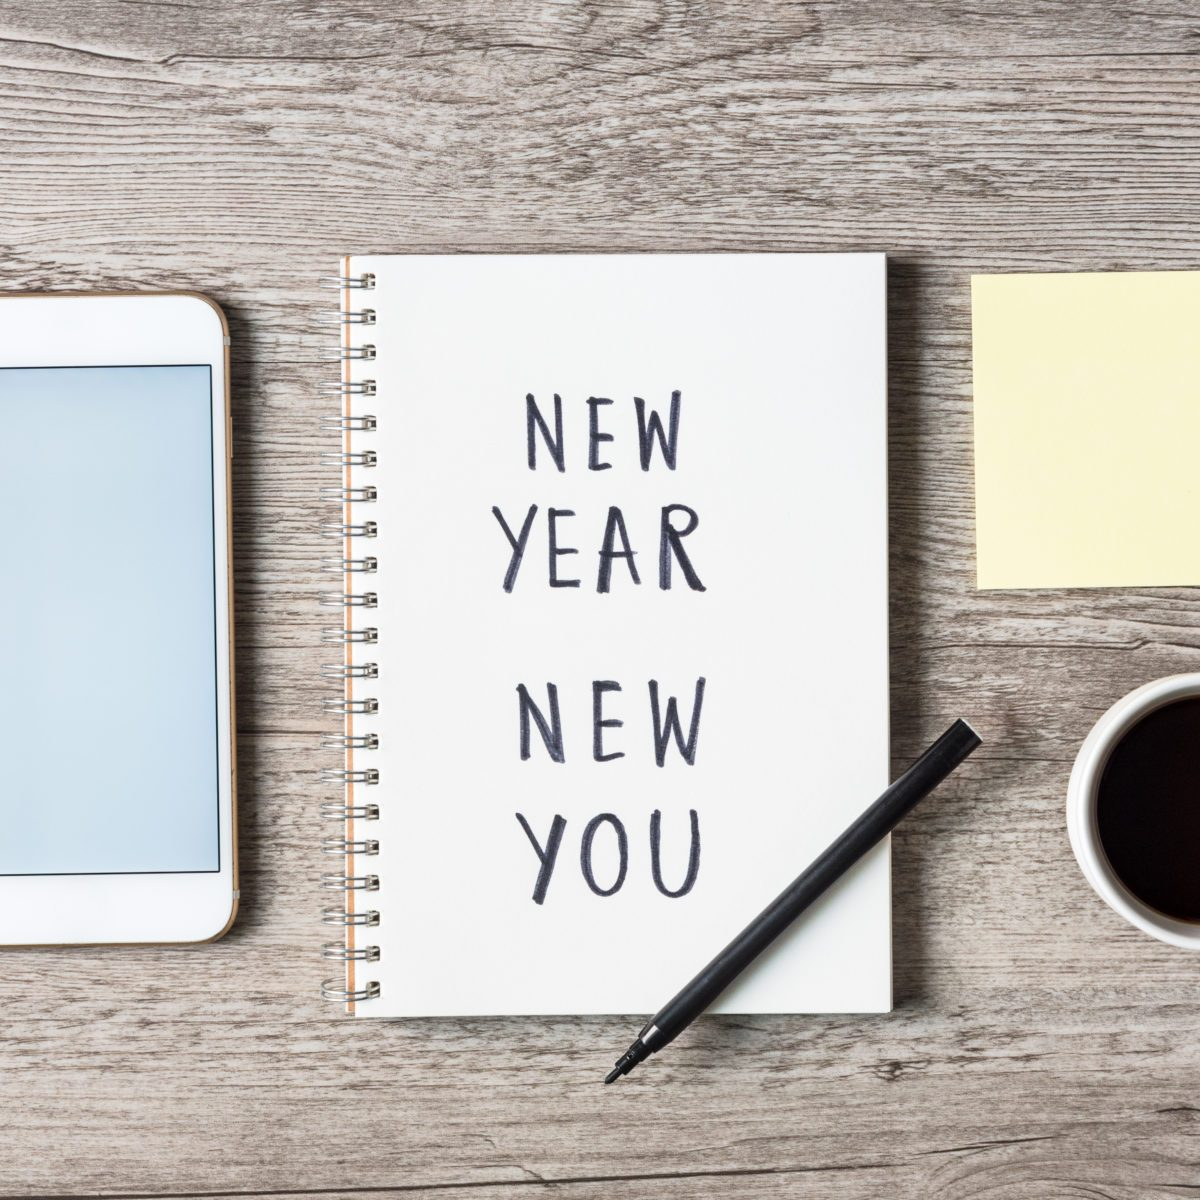 20 Genius Products That Will Help You Keep Your New Year's Resolutions